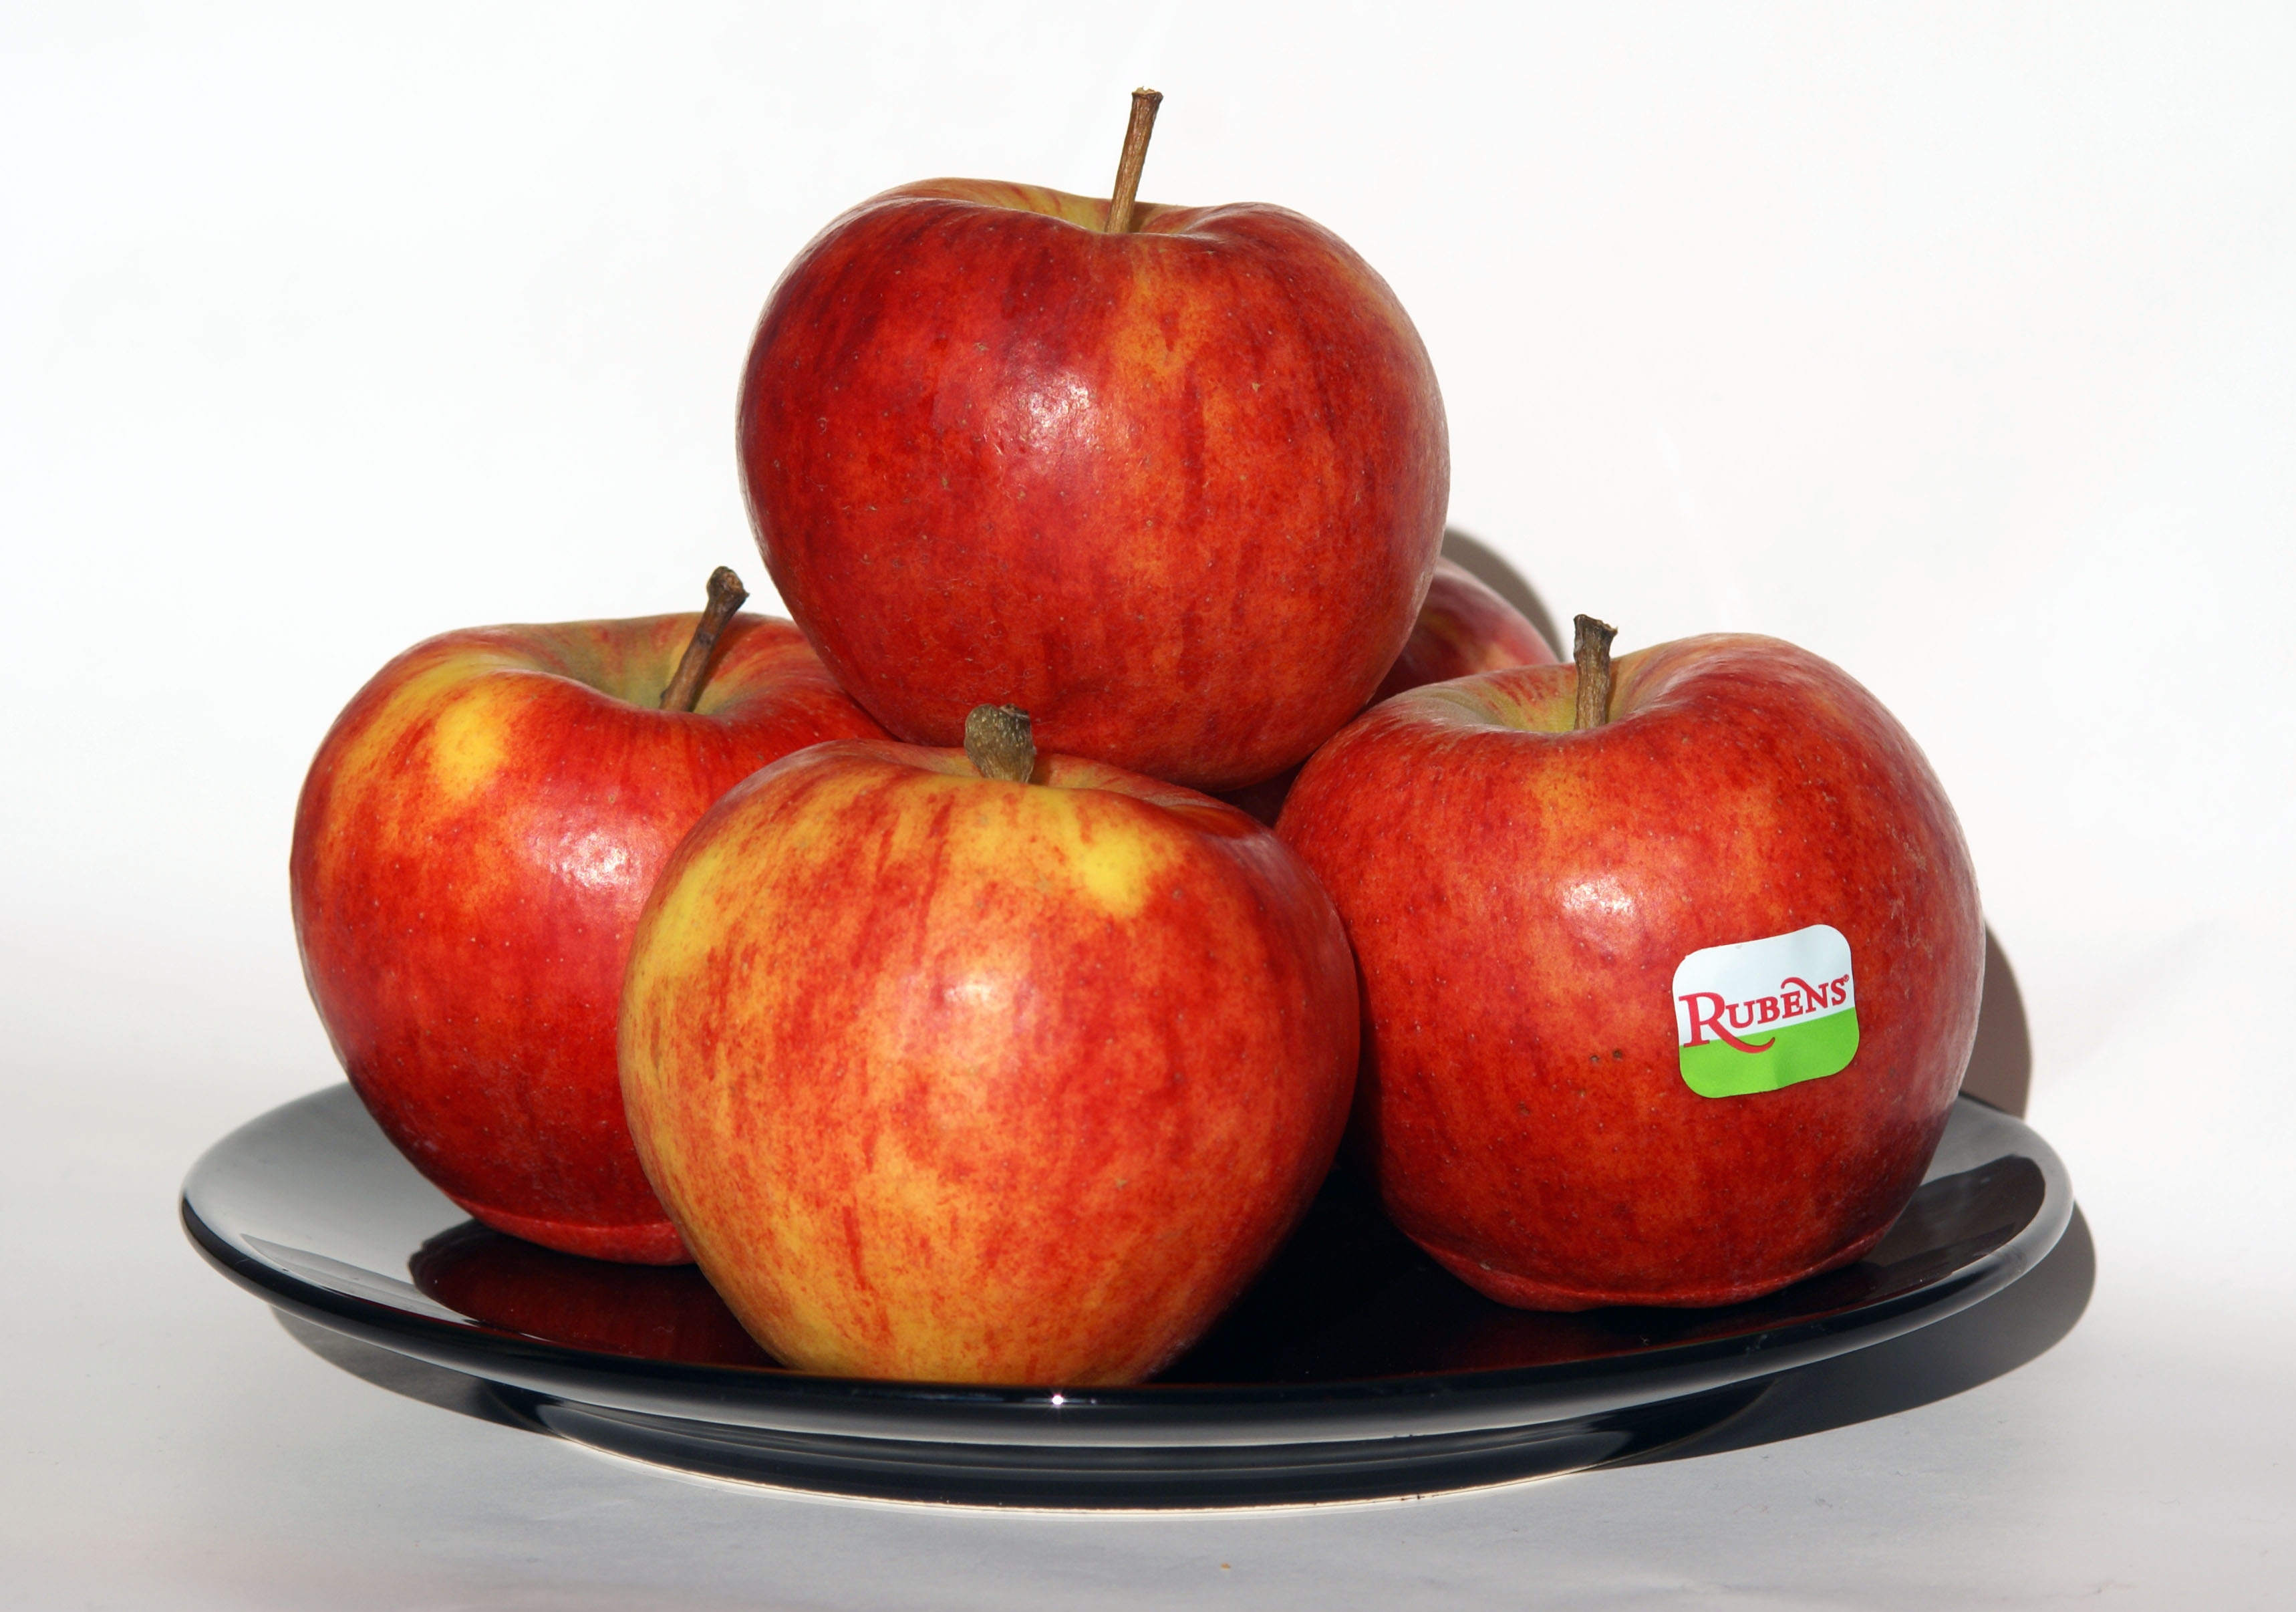 Rubens_apples_on_plate.jpg